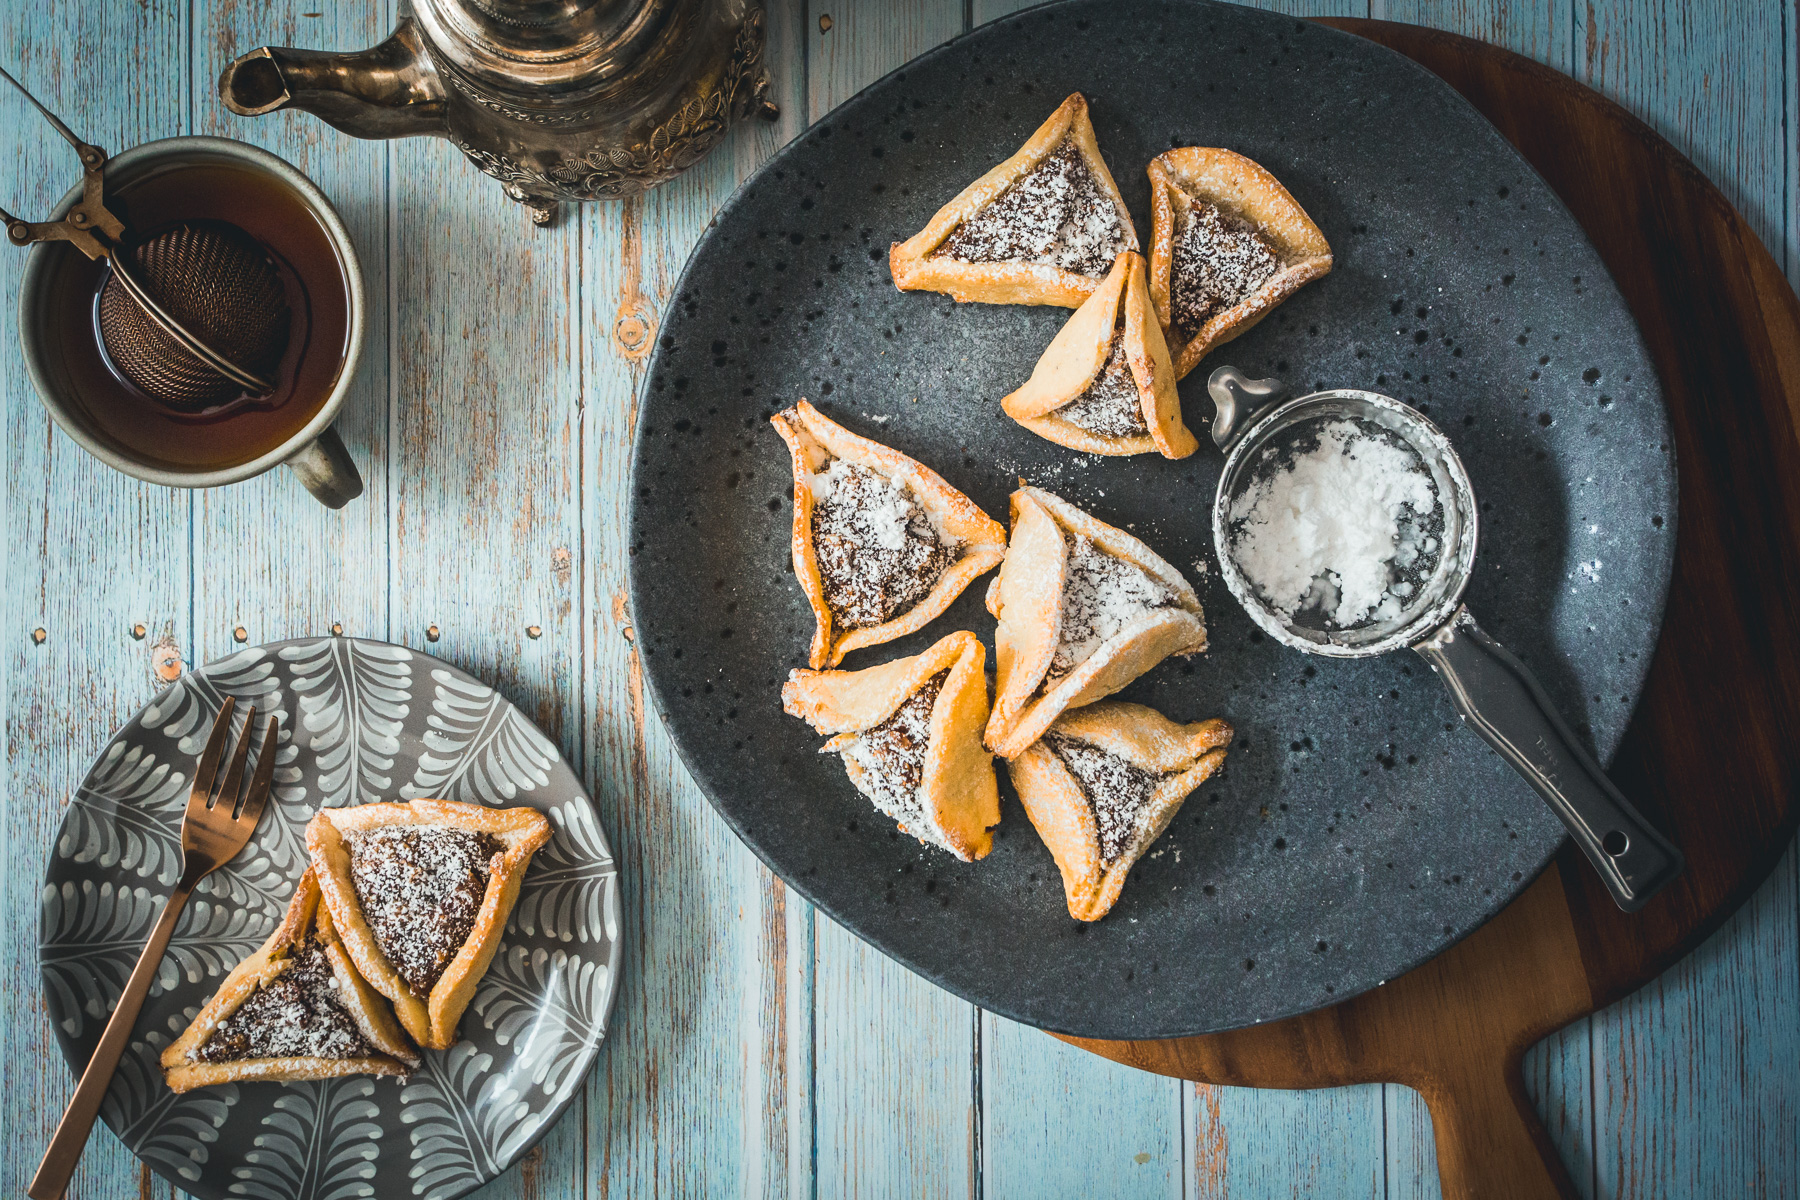 plate of hamantaschen and teapot